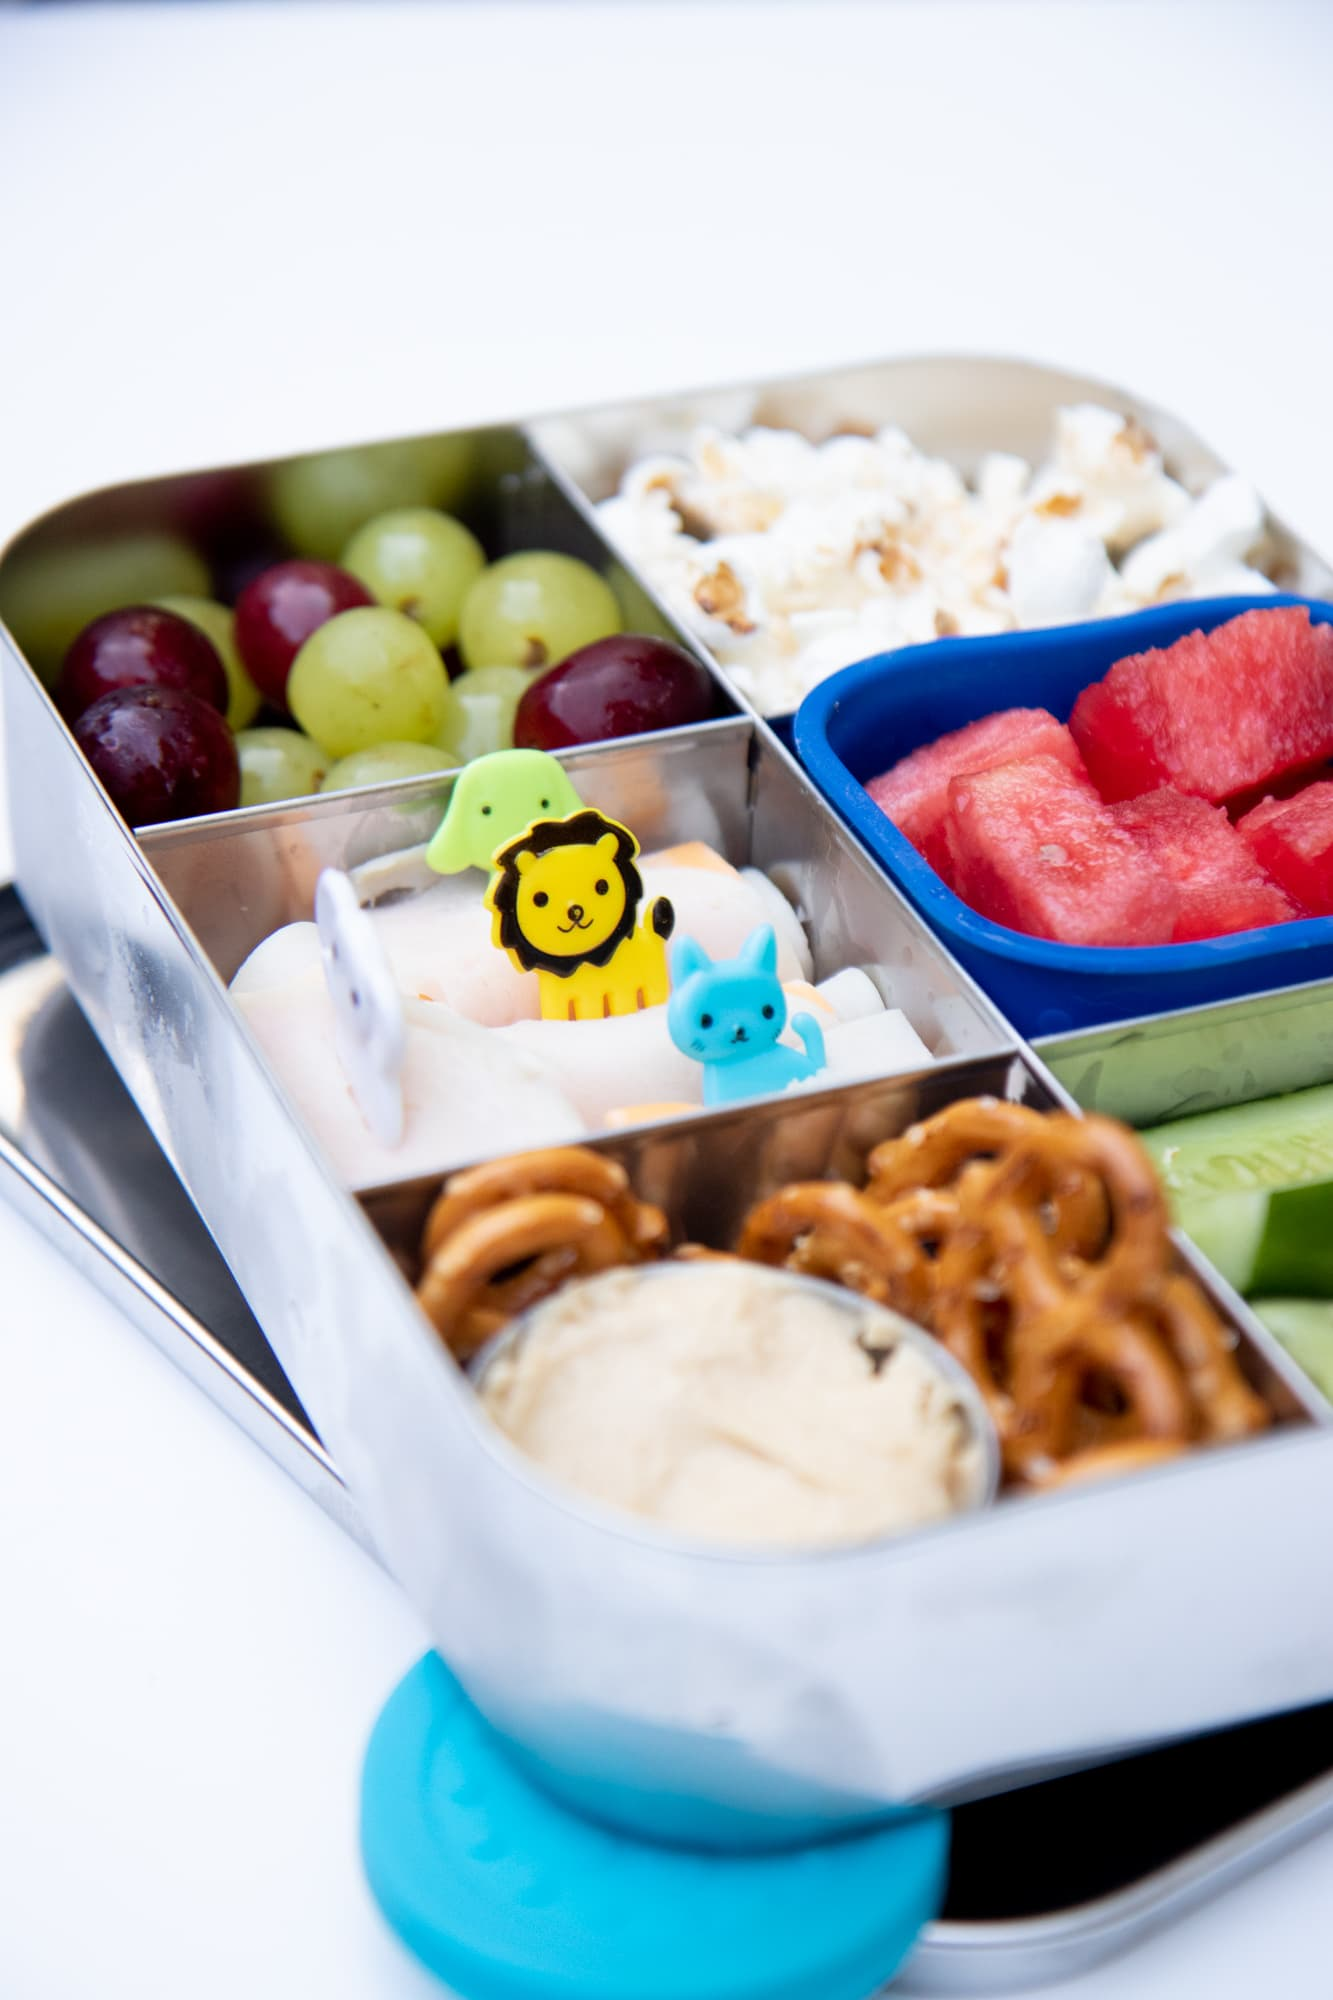 Stainless steel bento-style lunchbox filled with a snack lunch: pretzels and dip, grapes, watermelon, popcorn, cucumber spears, and deli meat roll-ups